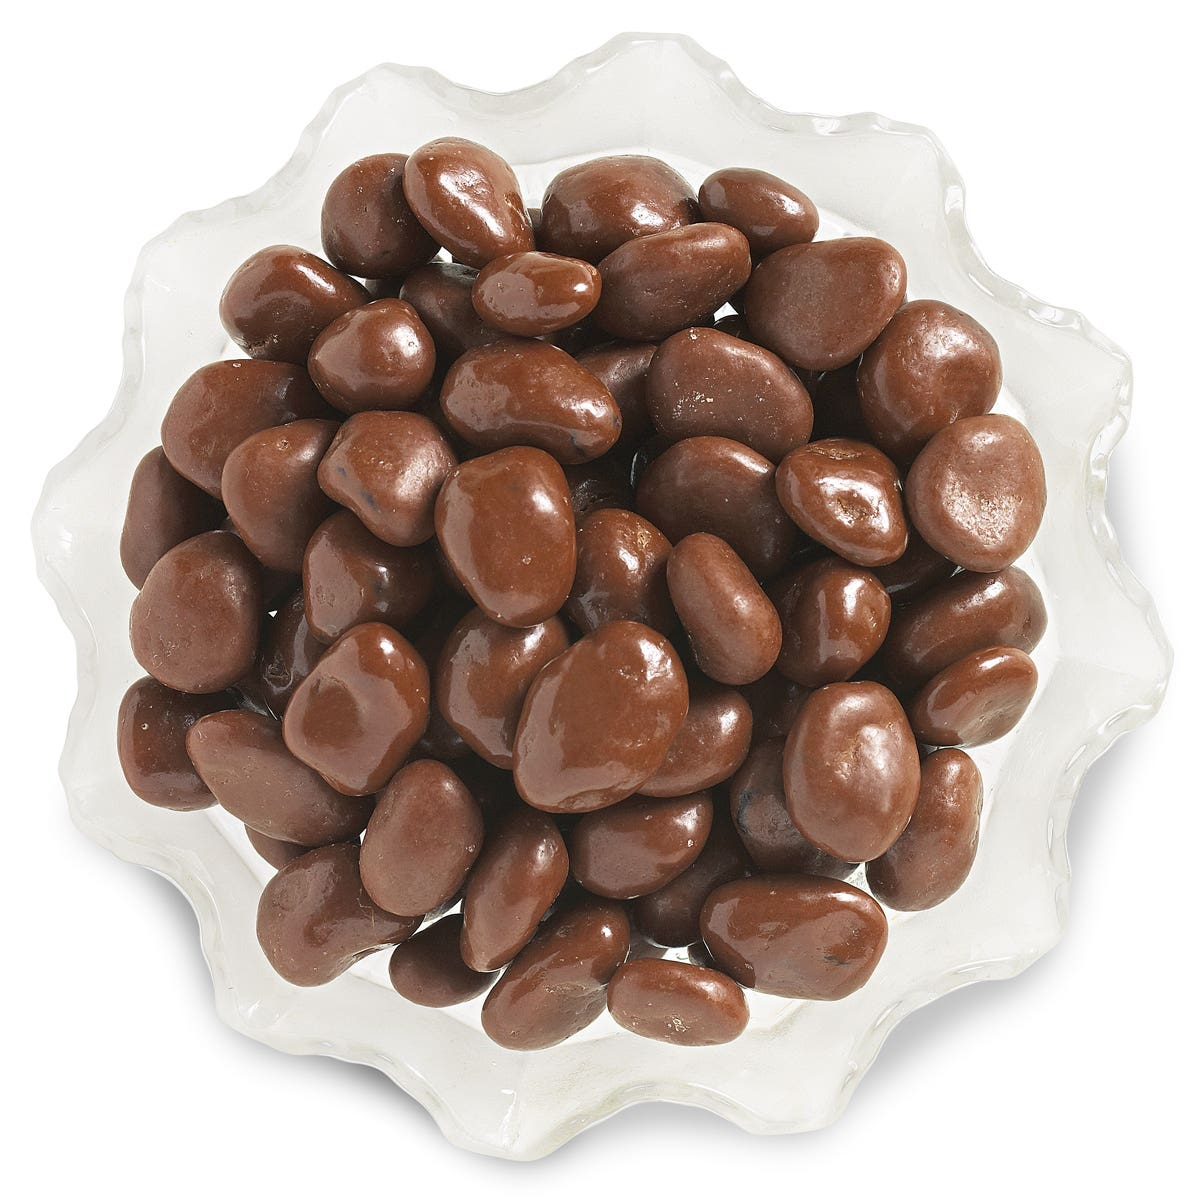 Tropical Wholefoods Chocolate Coated Raisins (150g) SINGLE